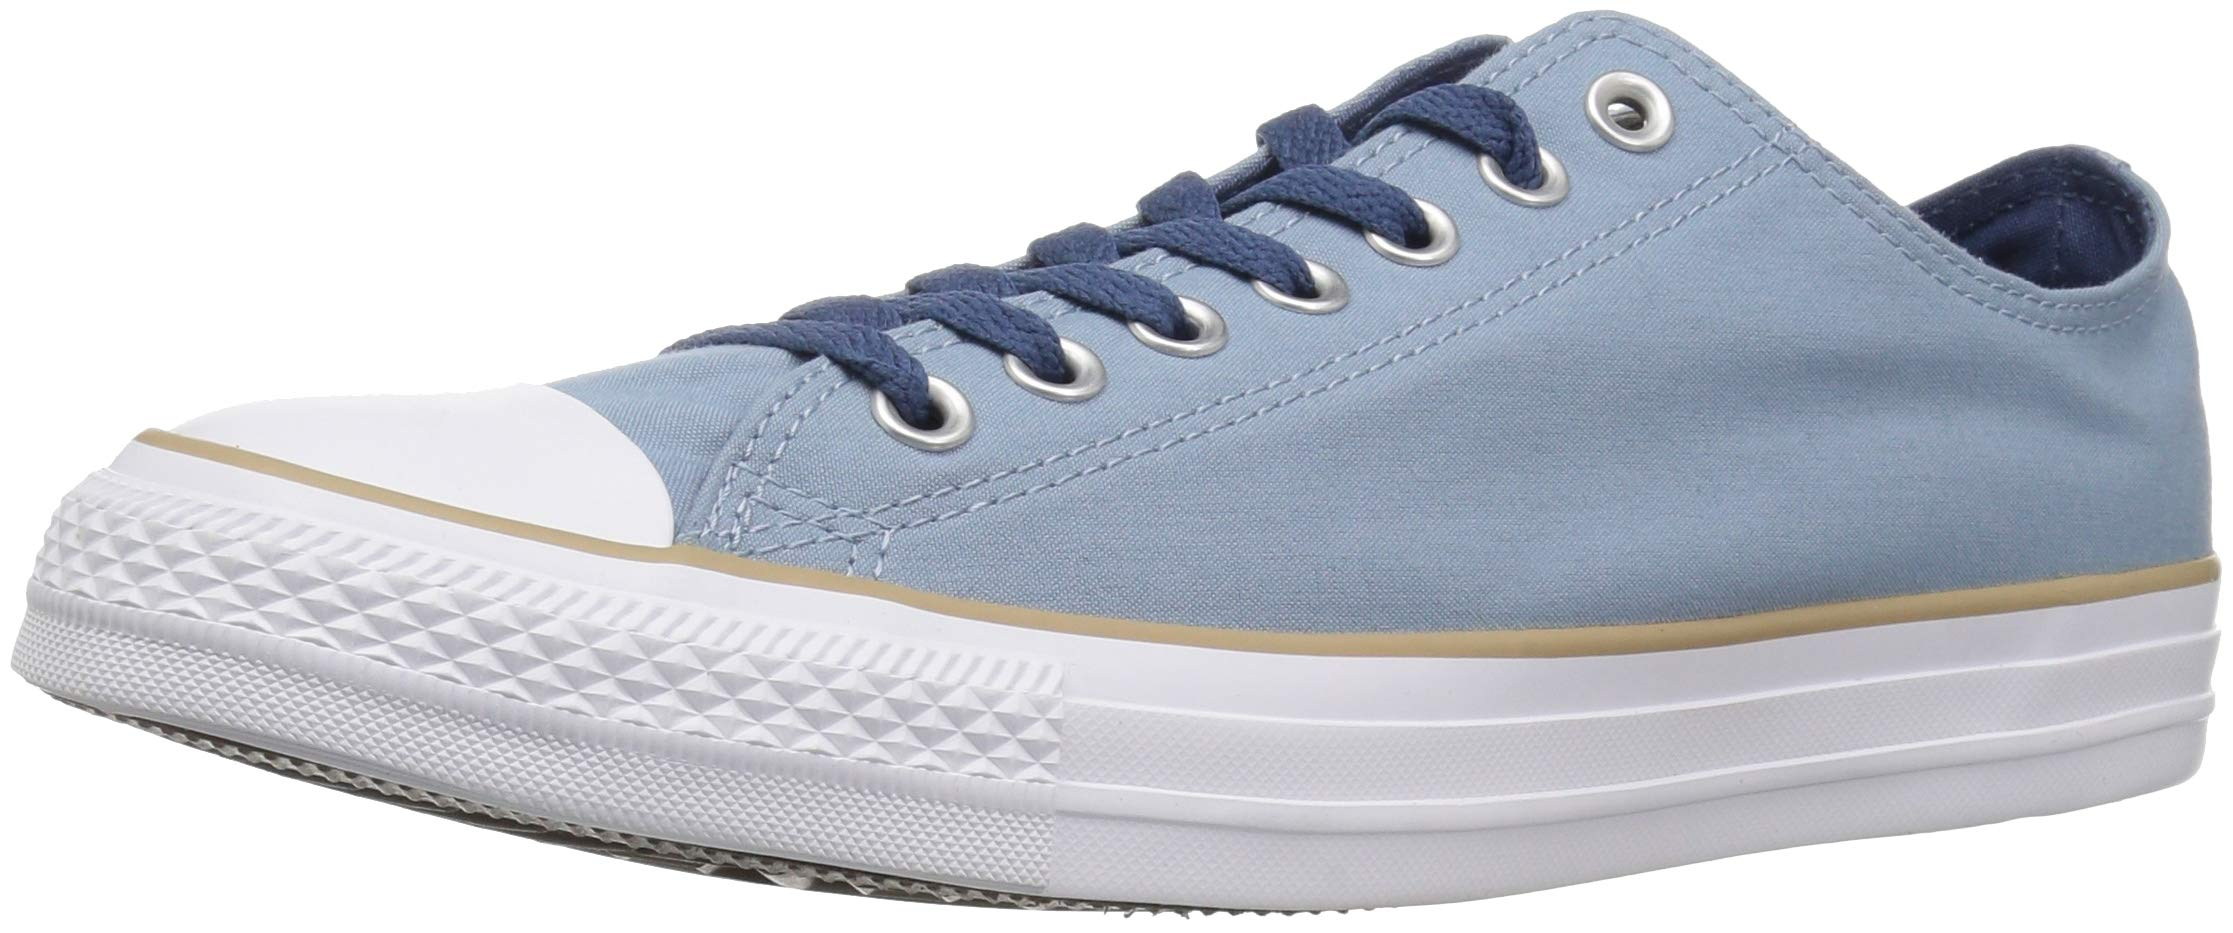 Converse Chuck Taylor All Star Color Blocked Low Top Sneaker, Washed Denim/Khaki/White, 10 M US